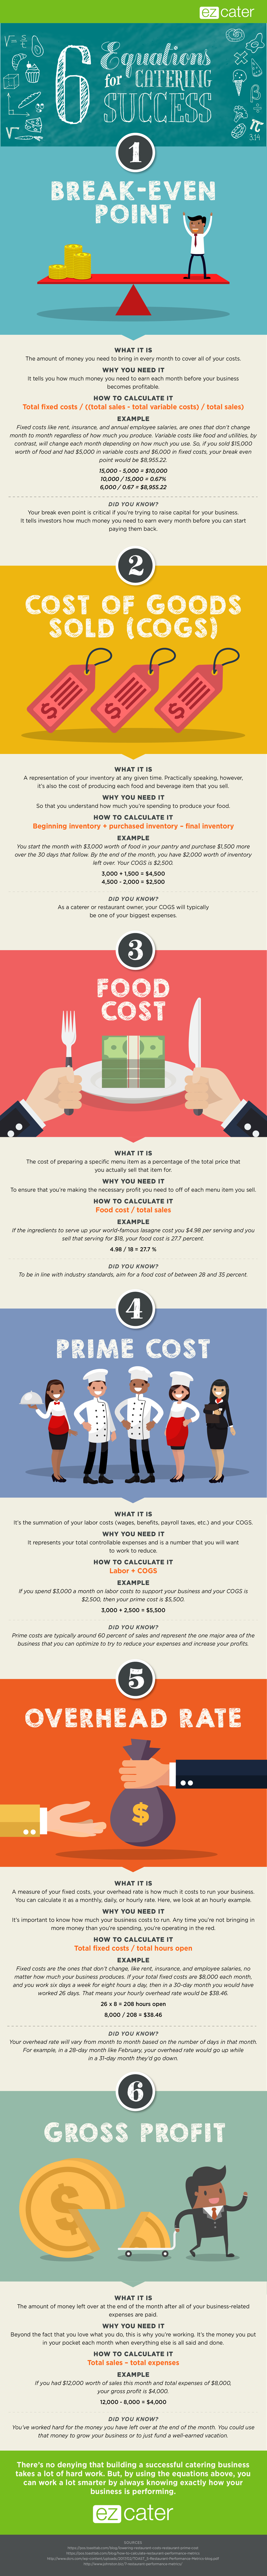 Restaurant Accounting Equations You Should Know [Infographic